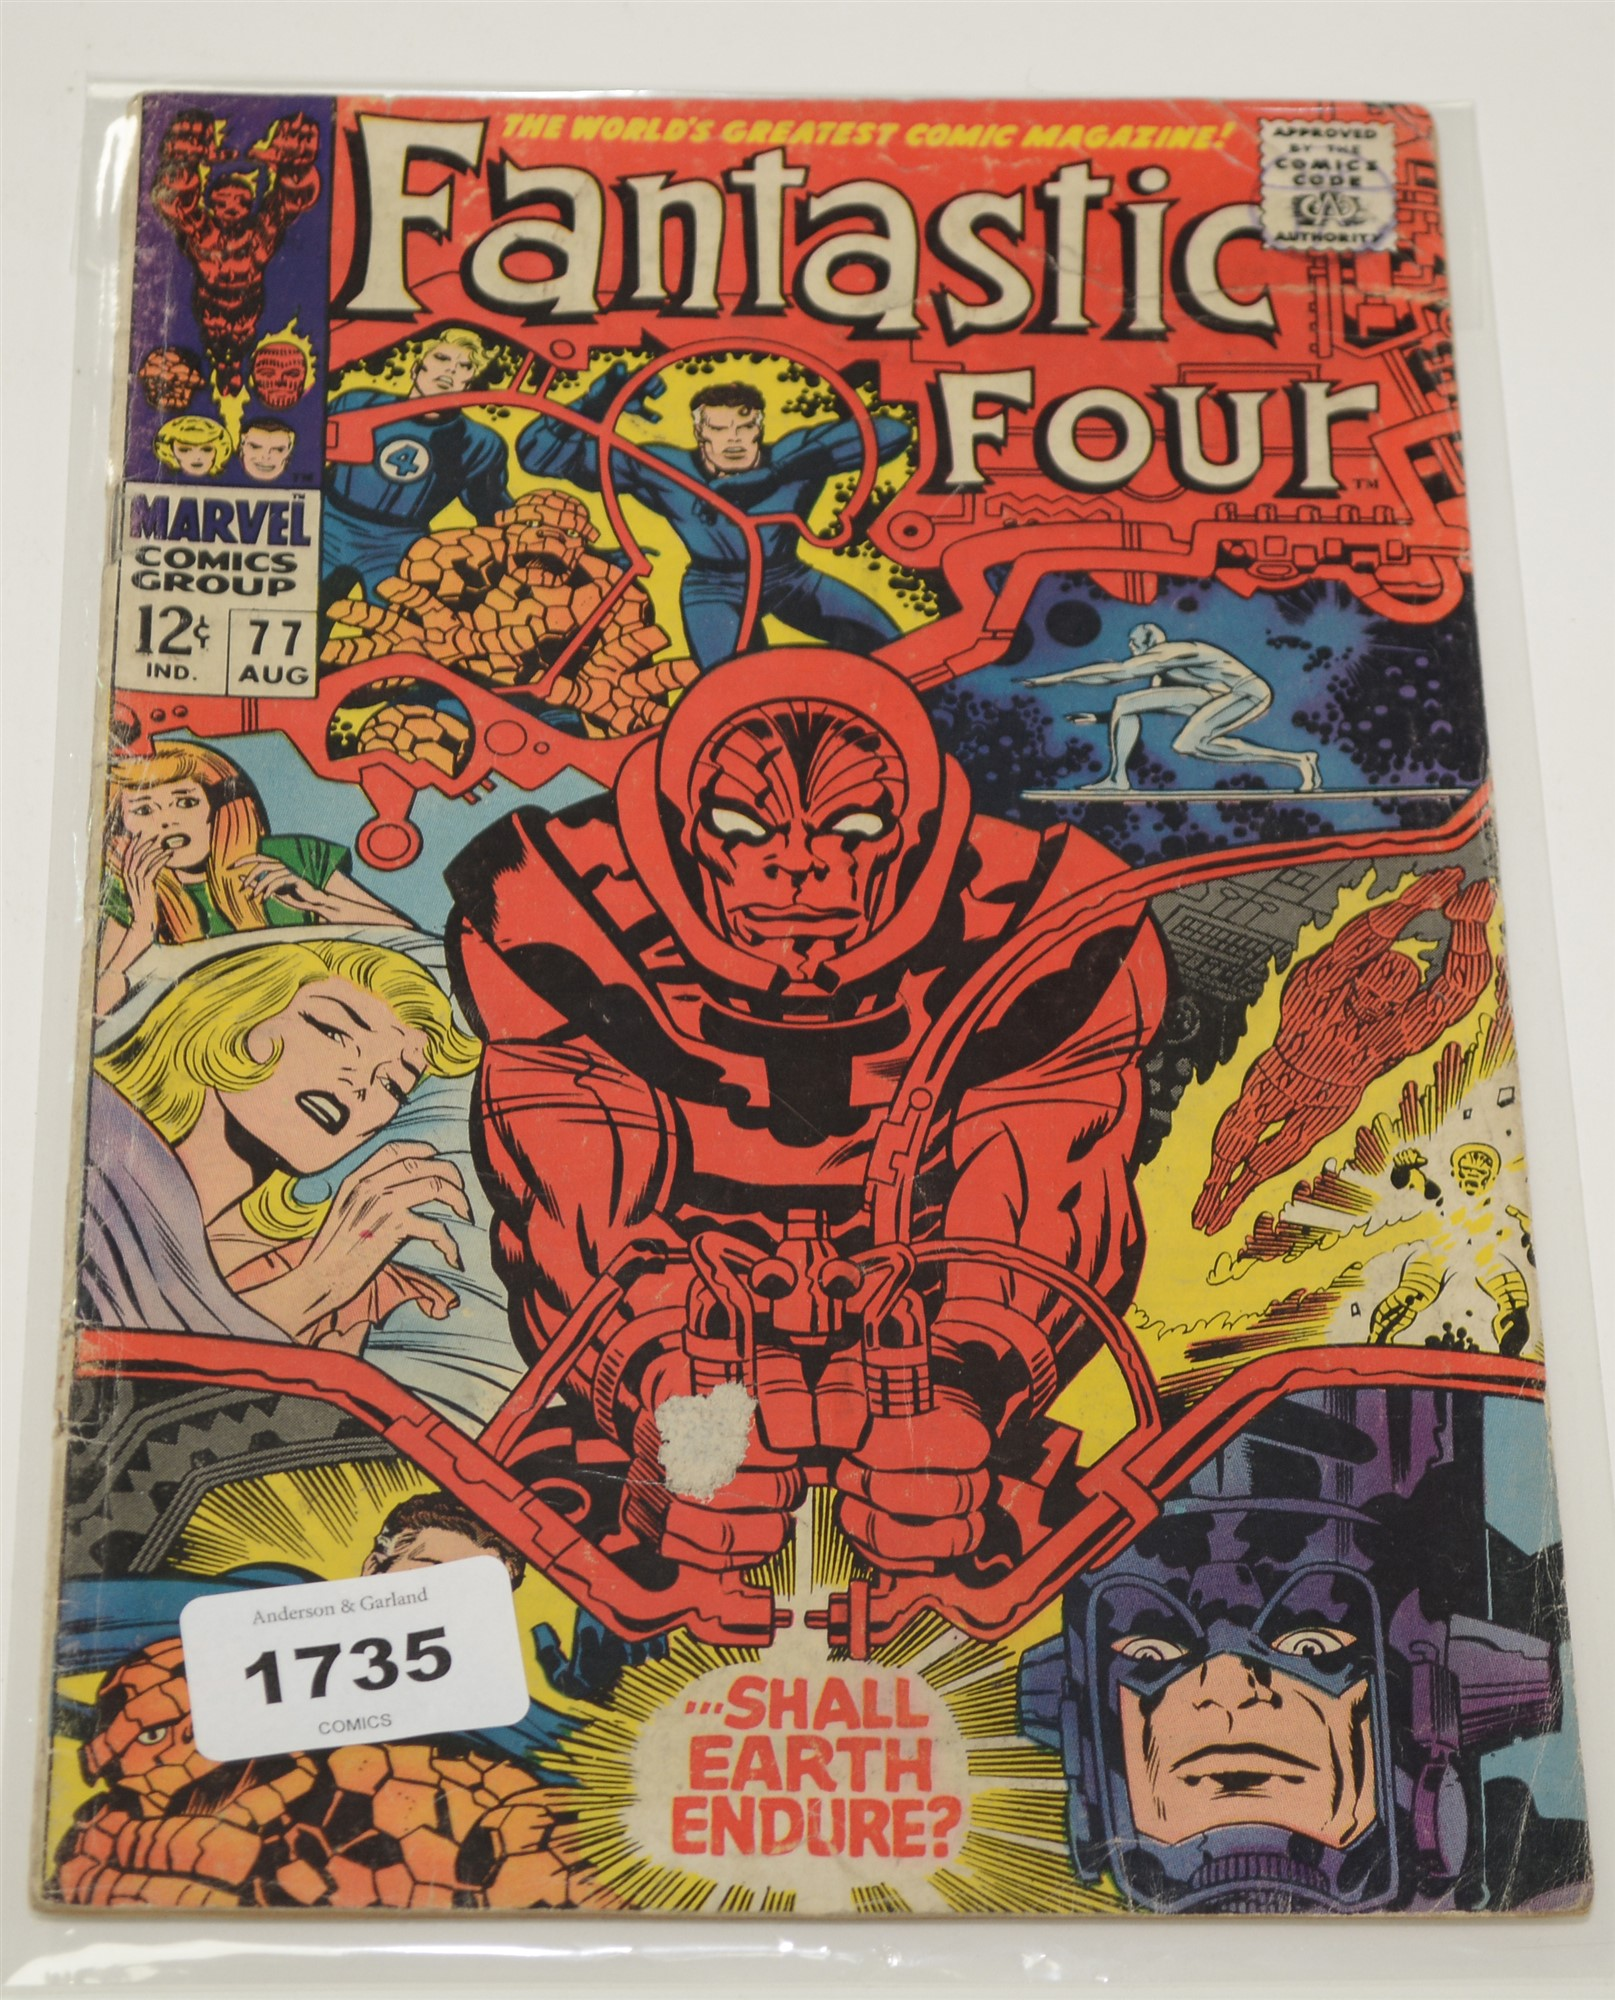 Fantastic Four No's. 60, 68, 77, 85, 87, 88, 90, 91, 92, 93 and 94. - Image 2 of 4